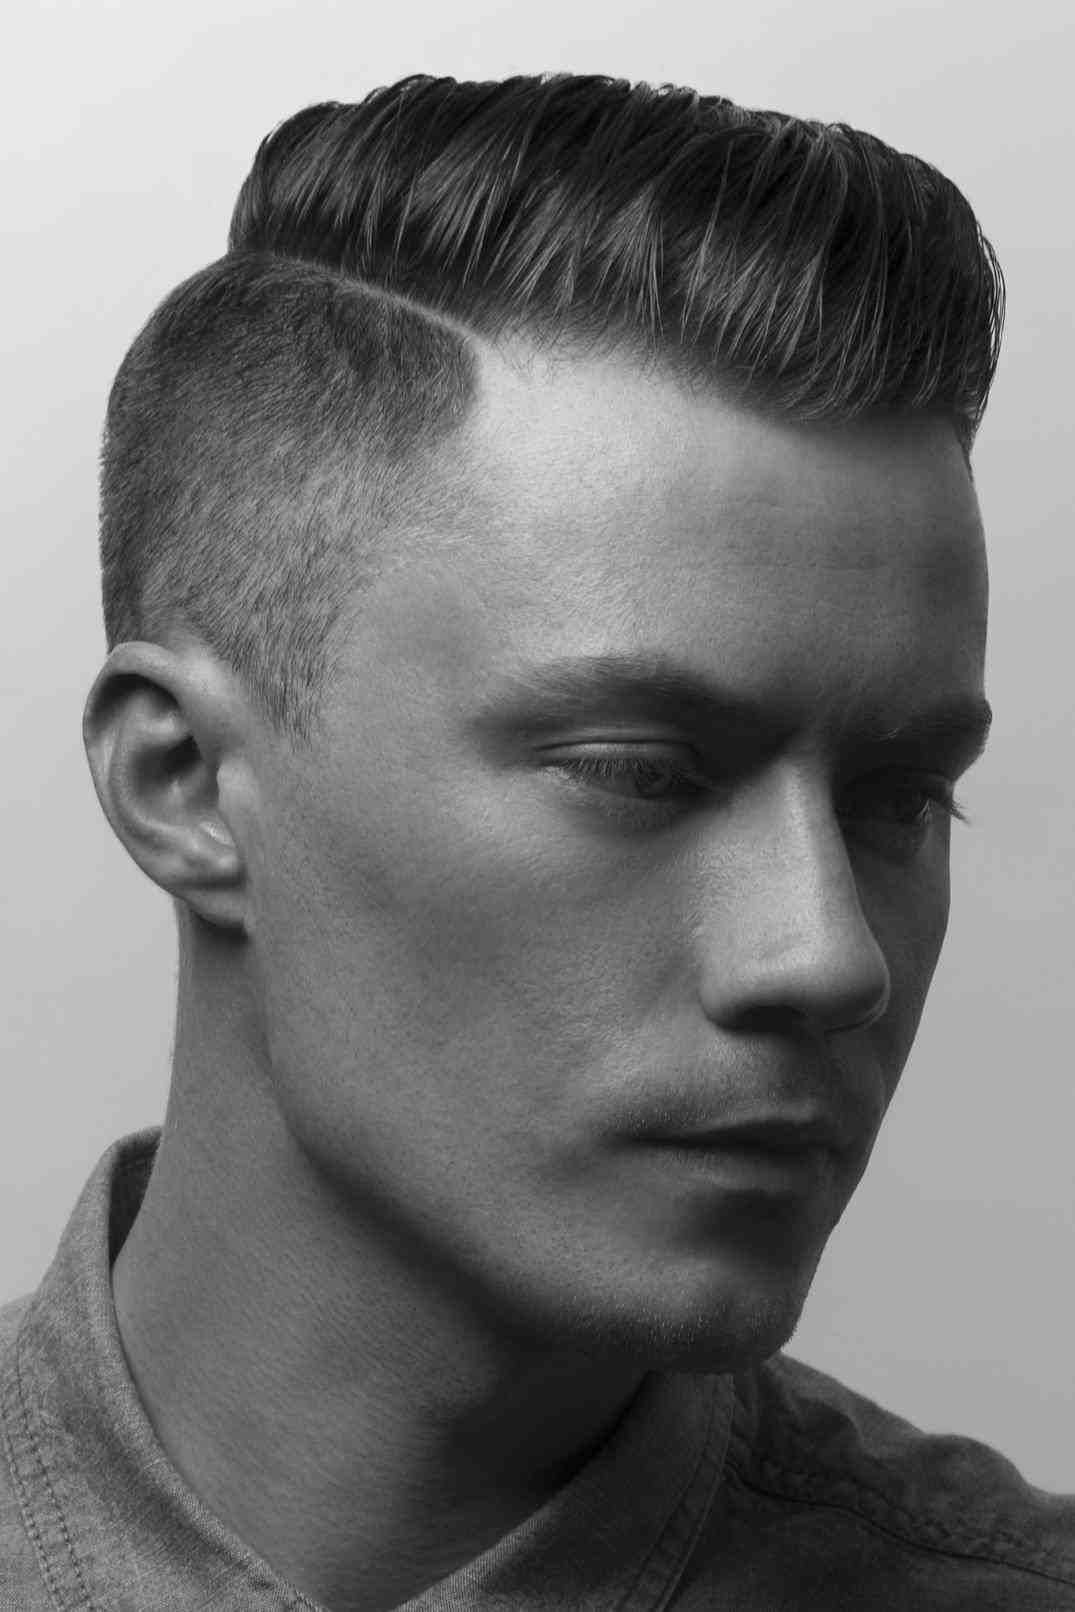 Balayagehair Club This Website Is For Sale Balayagehair Resources And Information Mens Hairstyles Undercut Undercut Hairstyles Mens Hairstyles